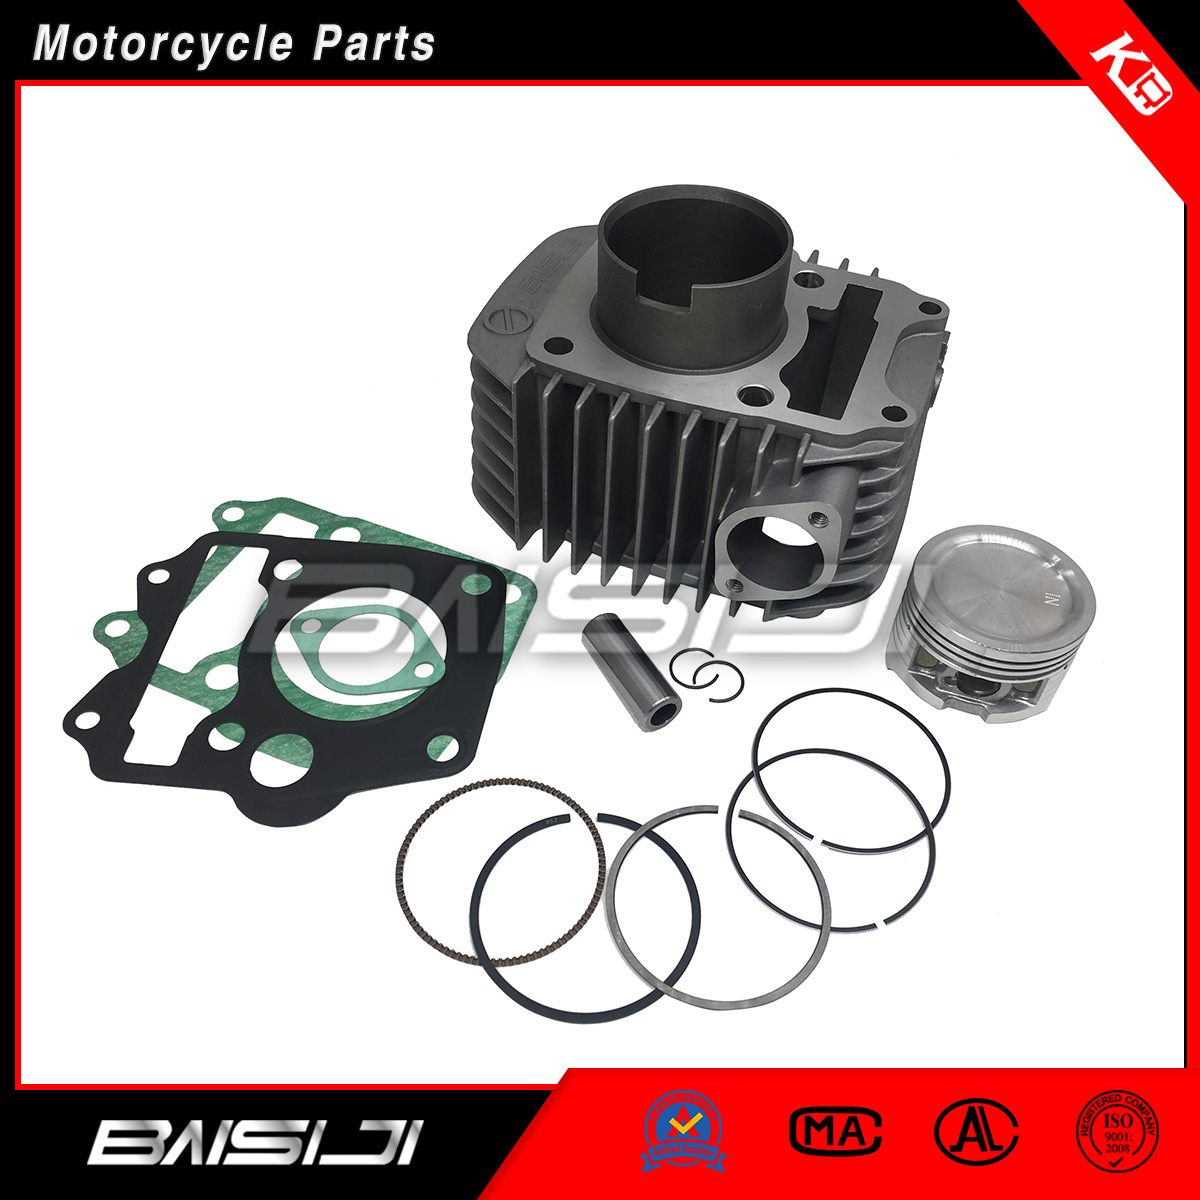 China Factory Direct Sell Motorcycle Cylinder Kit Honda Wave125 China Motorcycle Parts Motorcycle Spare Parts